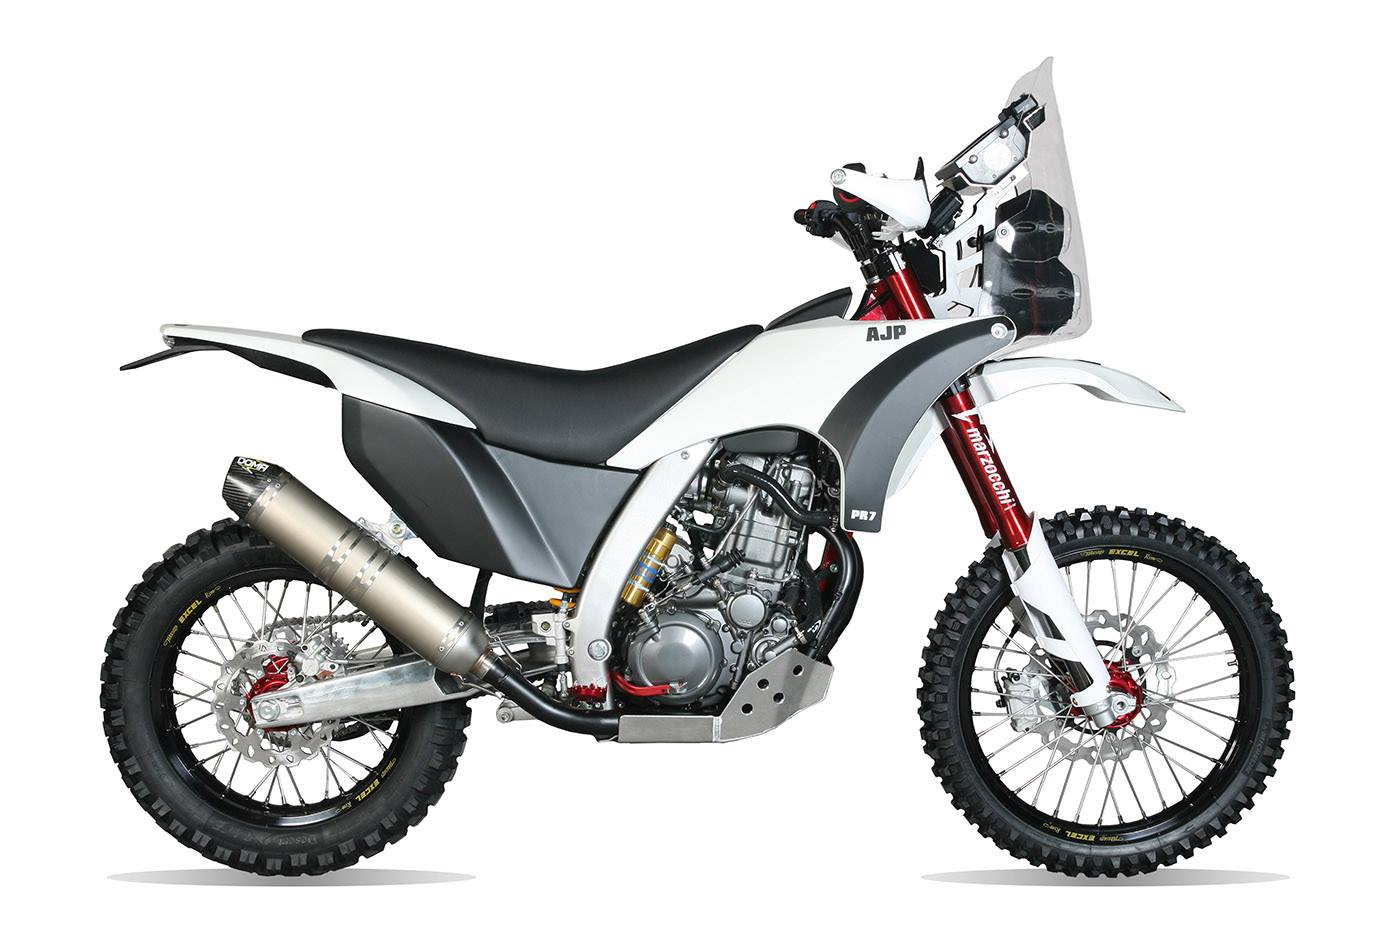 AJP PR7 rally bike